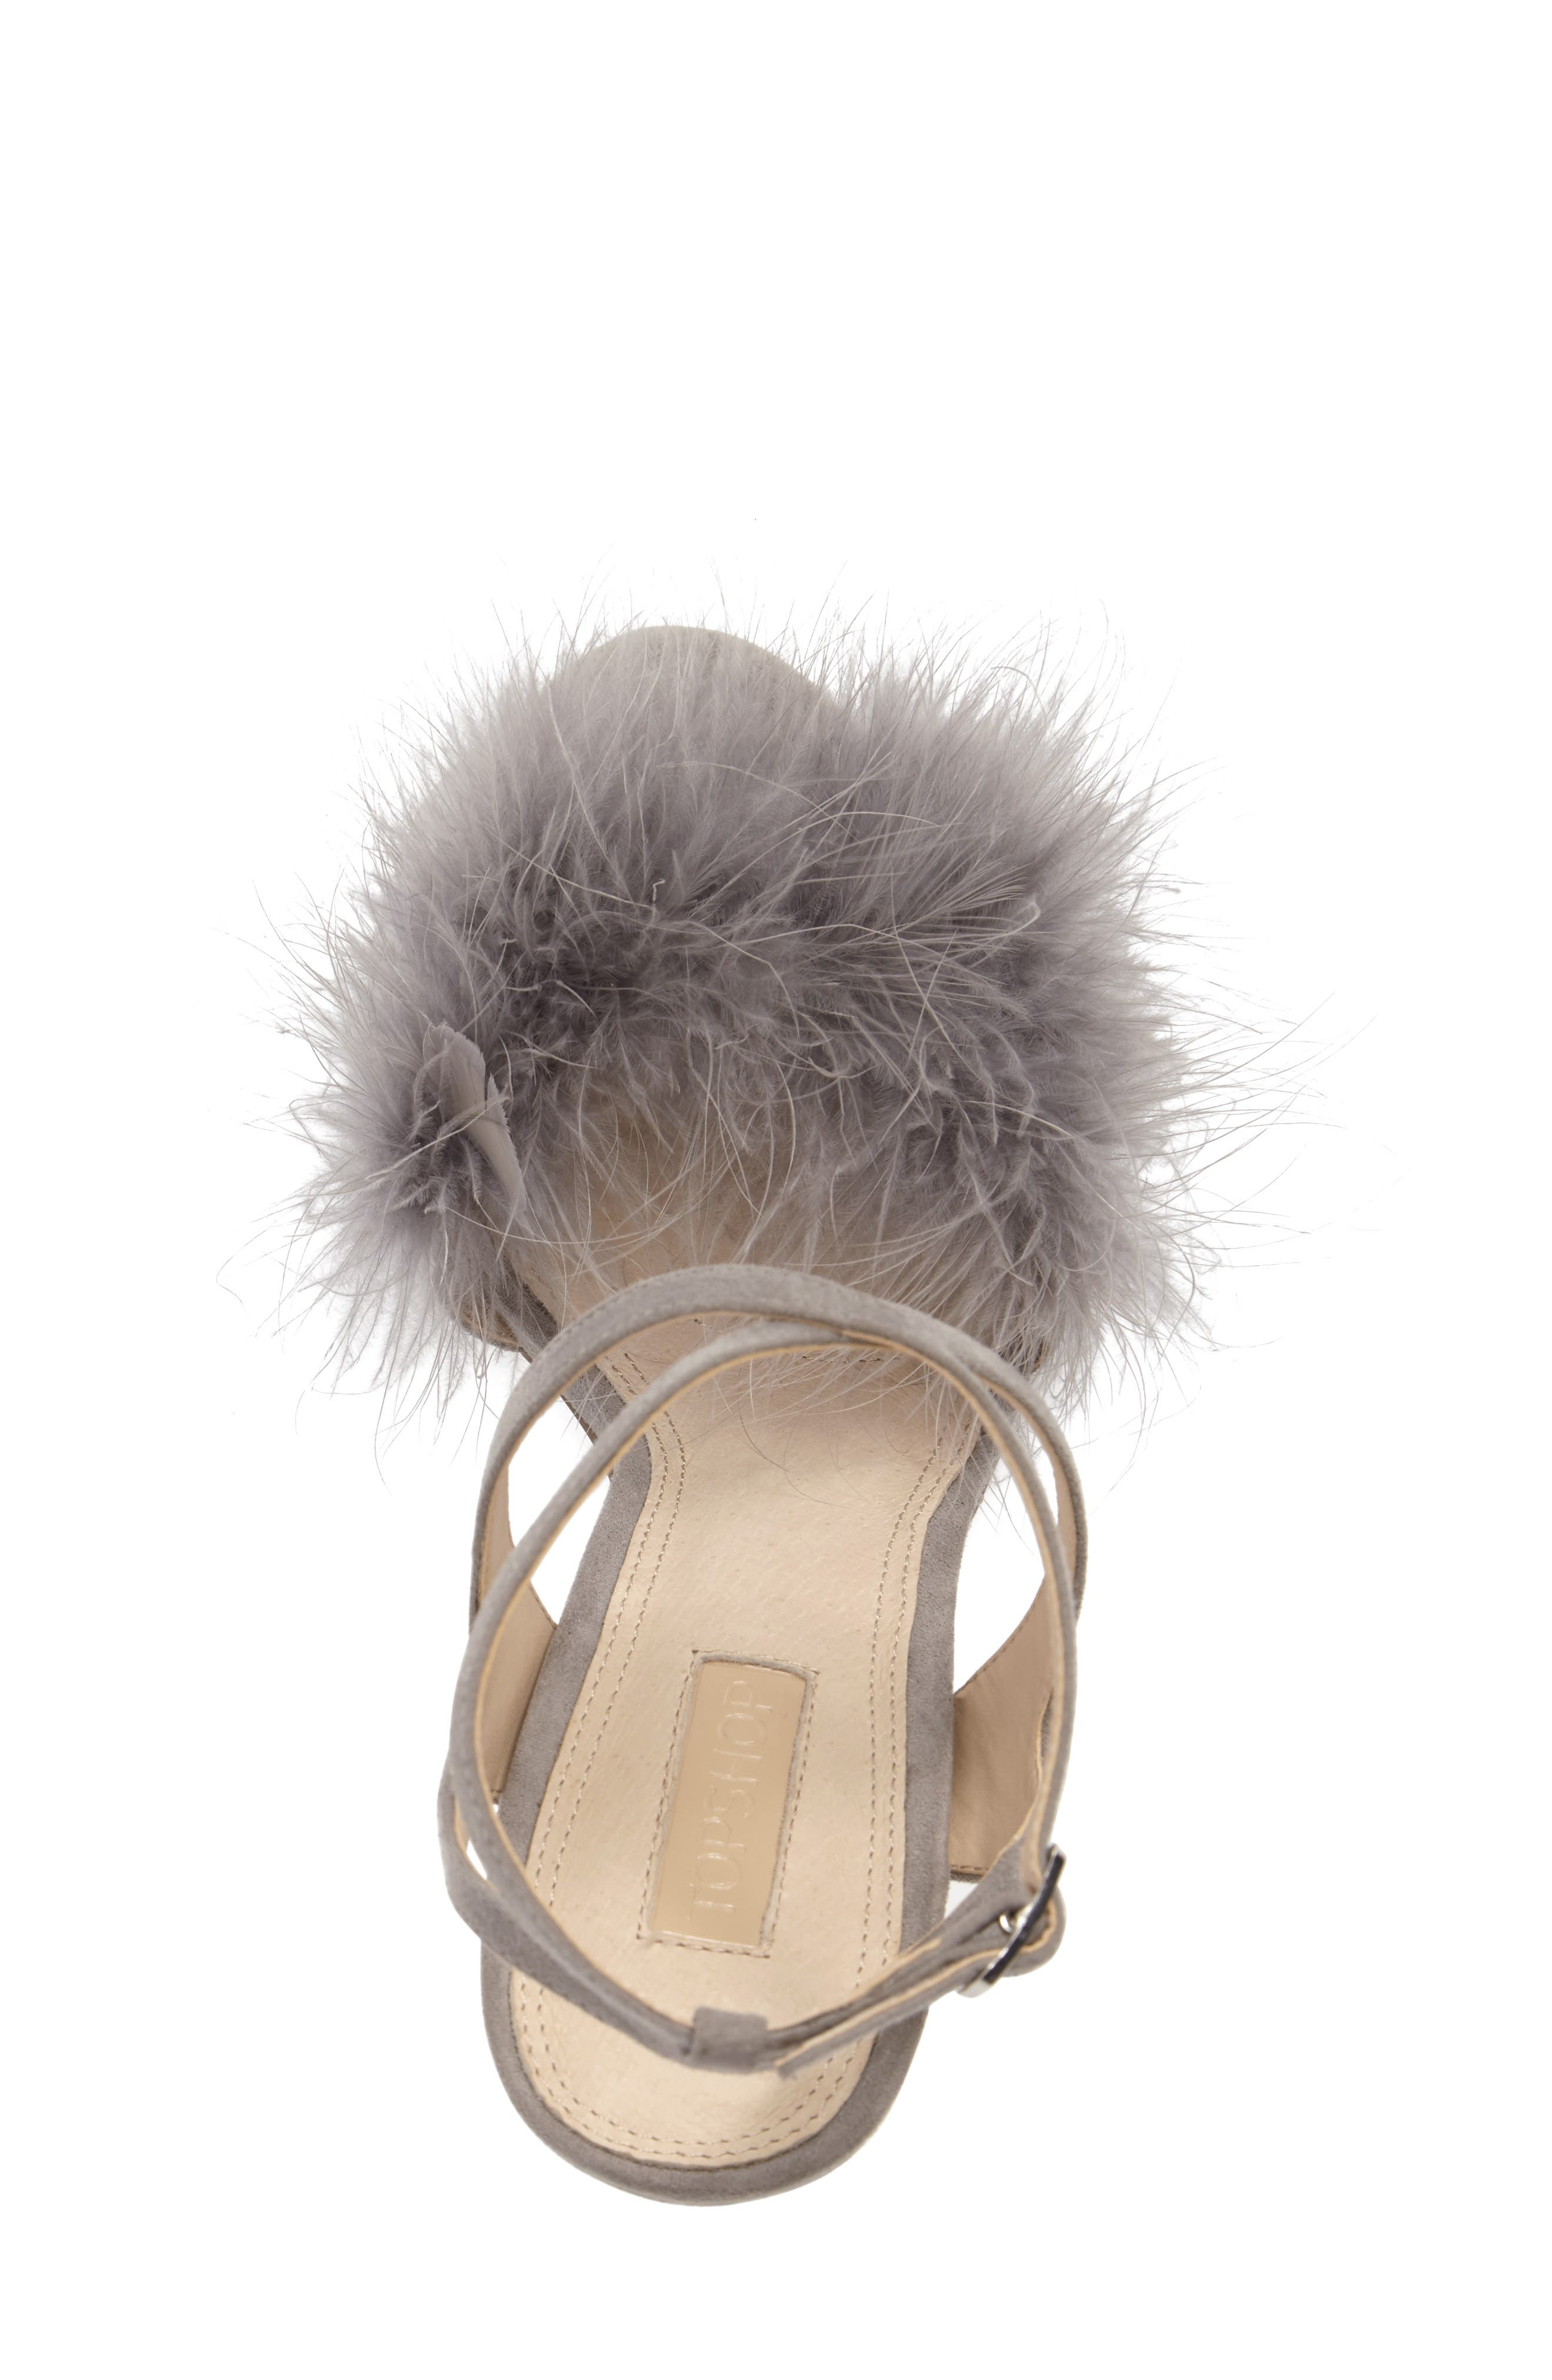 Reine Feathered Sandal,                             Alternate thumbnail 5, color,                             020